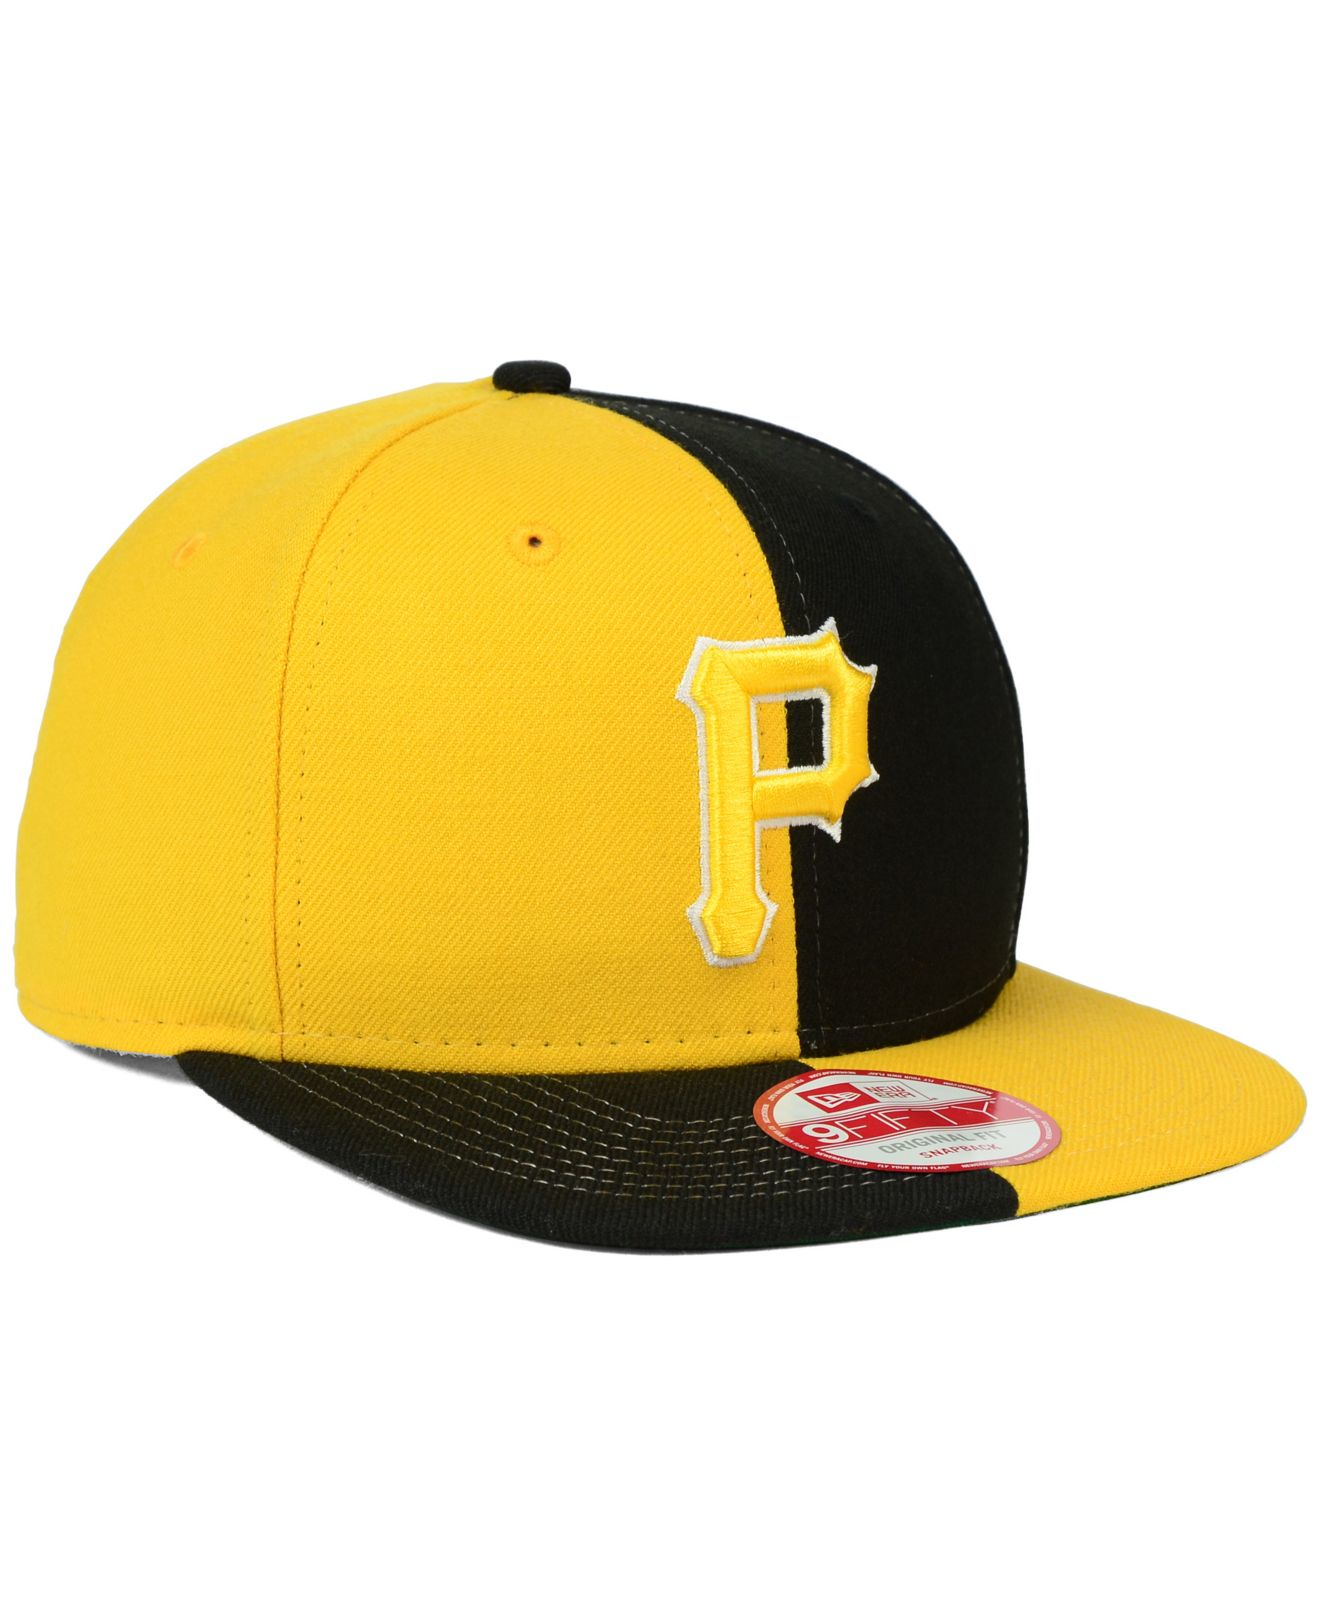 sports shoes ef4af 6fd02 ... era performance 59fifty fitted hat greece low profile 59fifty fitted  lyst ktz pittsburgh pirates double splitem 9fifty snapback cap in e657c ...